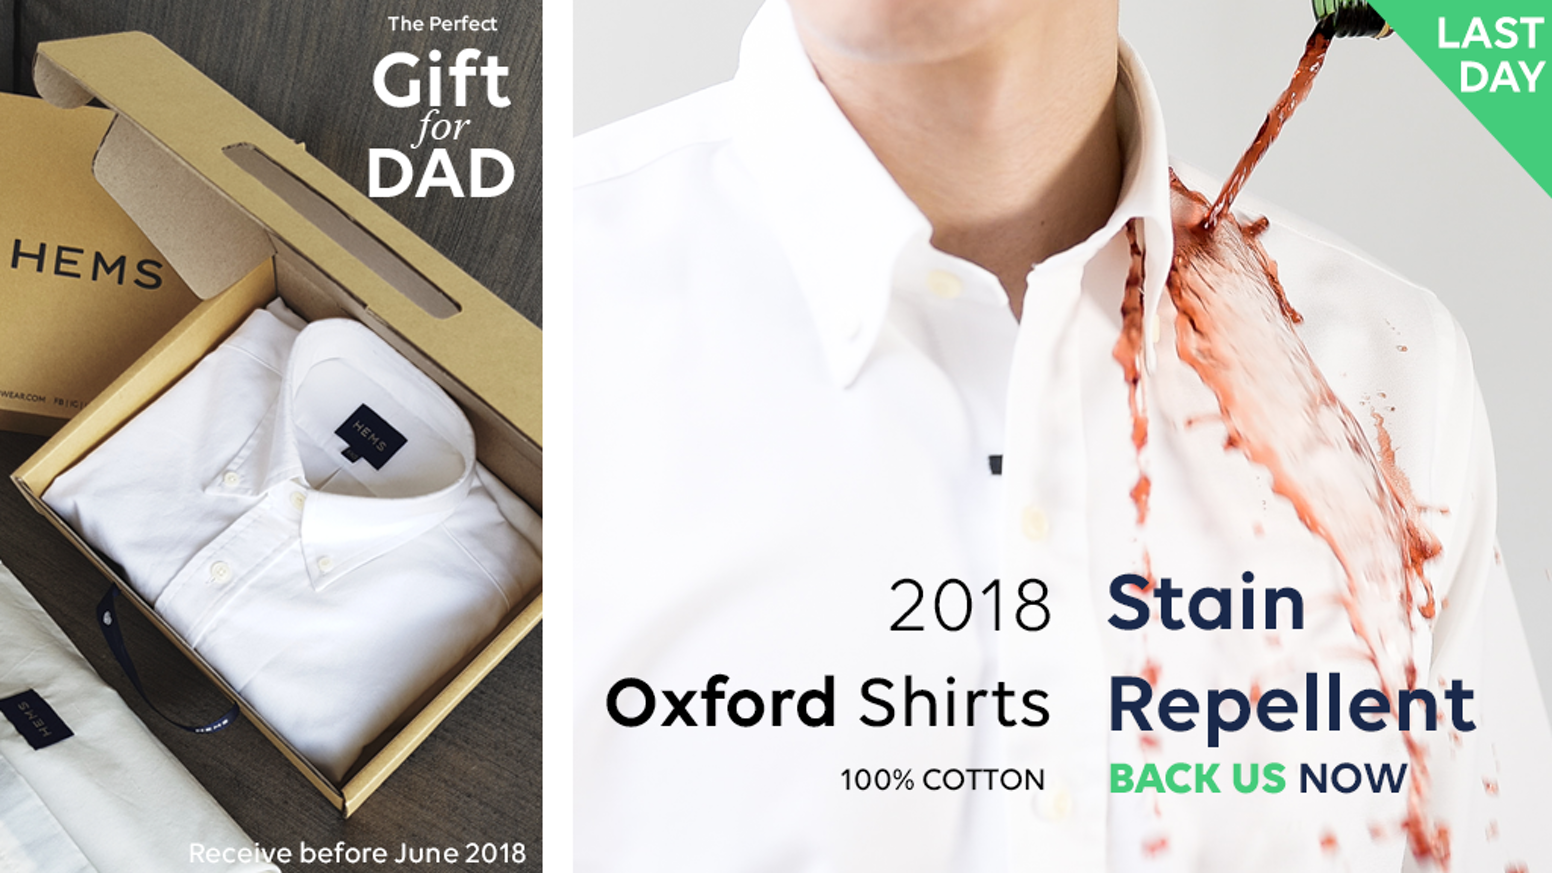 HEMS - Stain & Odour Repellent Oxford shirts, 100% Cotton is the top crowdfunding project launched today. HEMS - Stain & Odour Repellent Oxford shirts, 100% Cotton raised over $600309 from 42 backers. Other top projects include SwissMak - The Mill Turn Center for your machine shop, Aurora: World's 1st Day/Night Camera with True Night Vision, Funding the music (Canceled)...